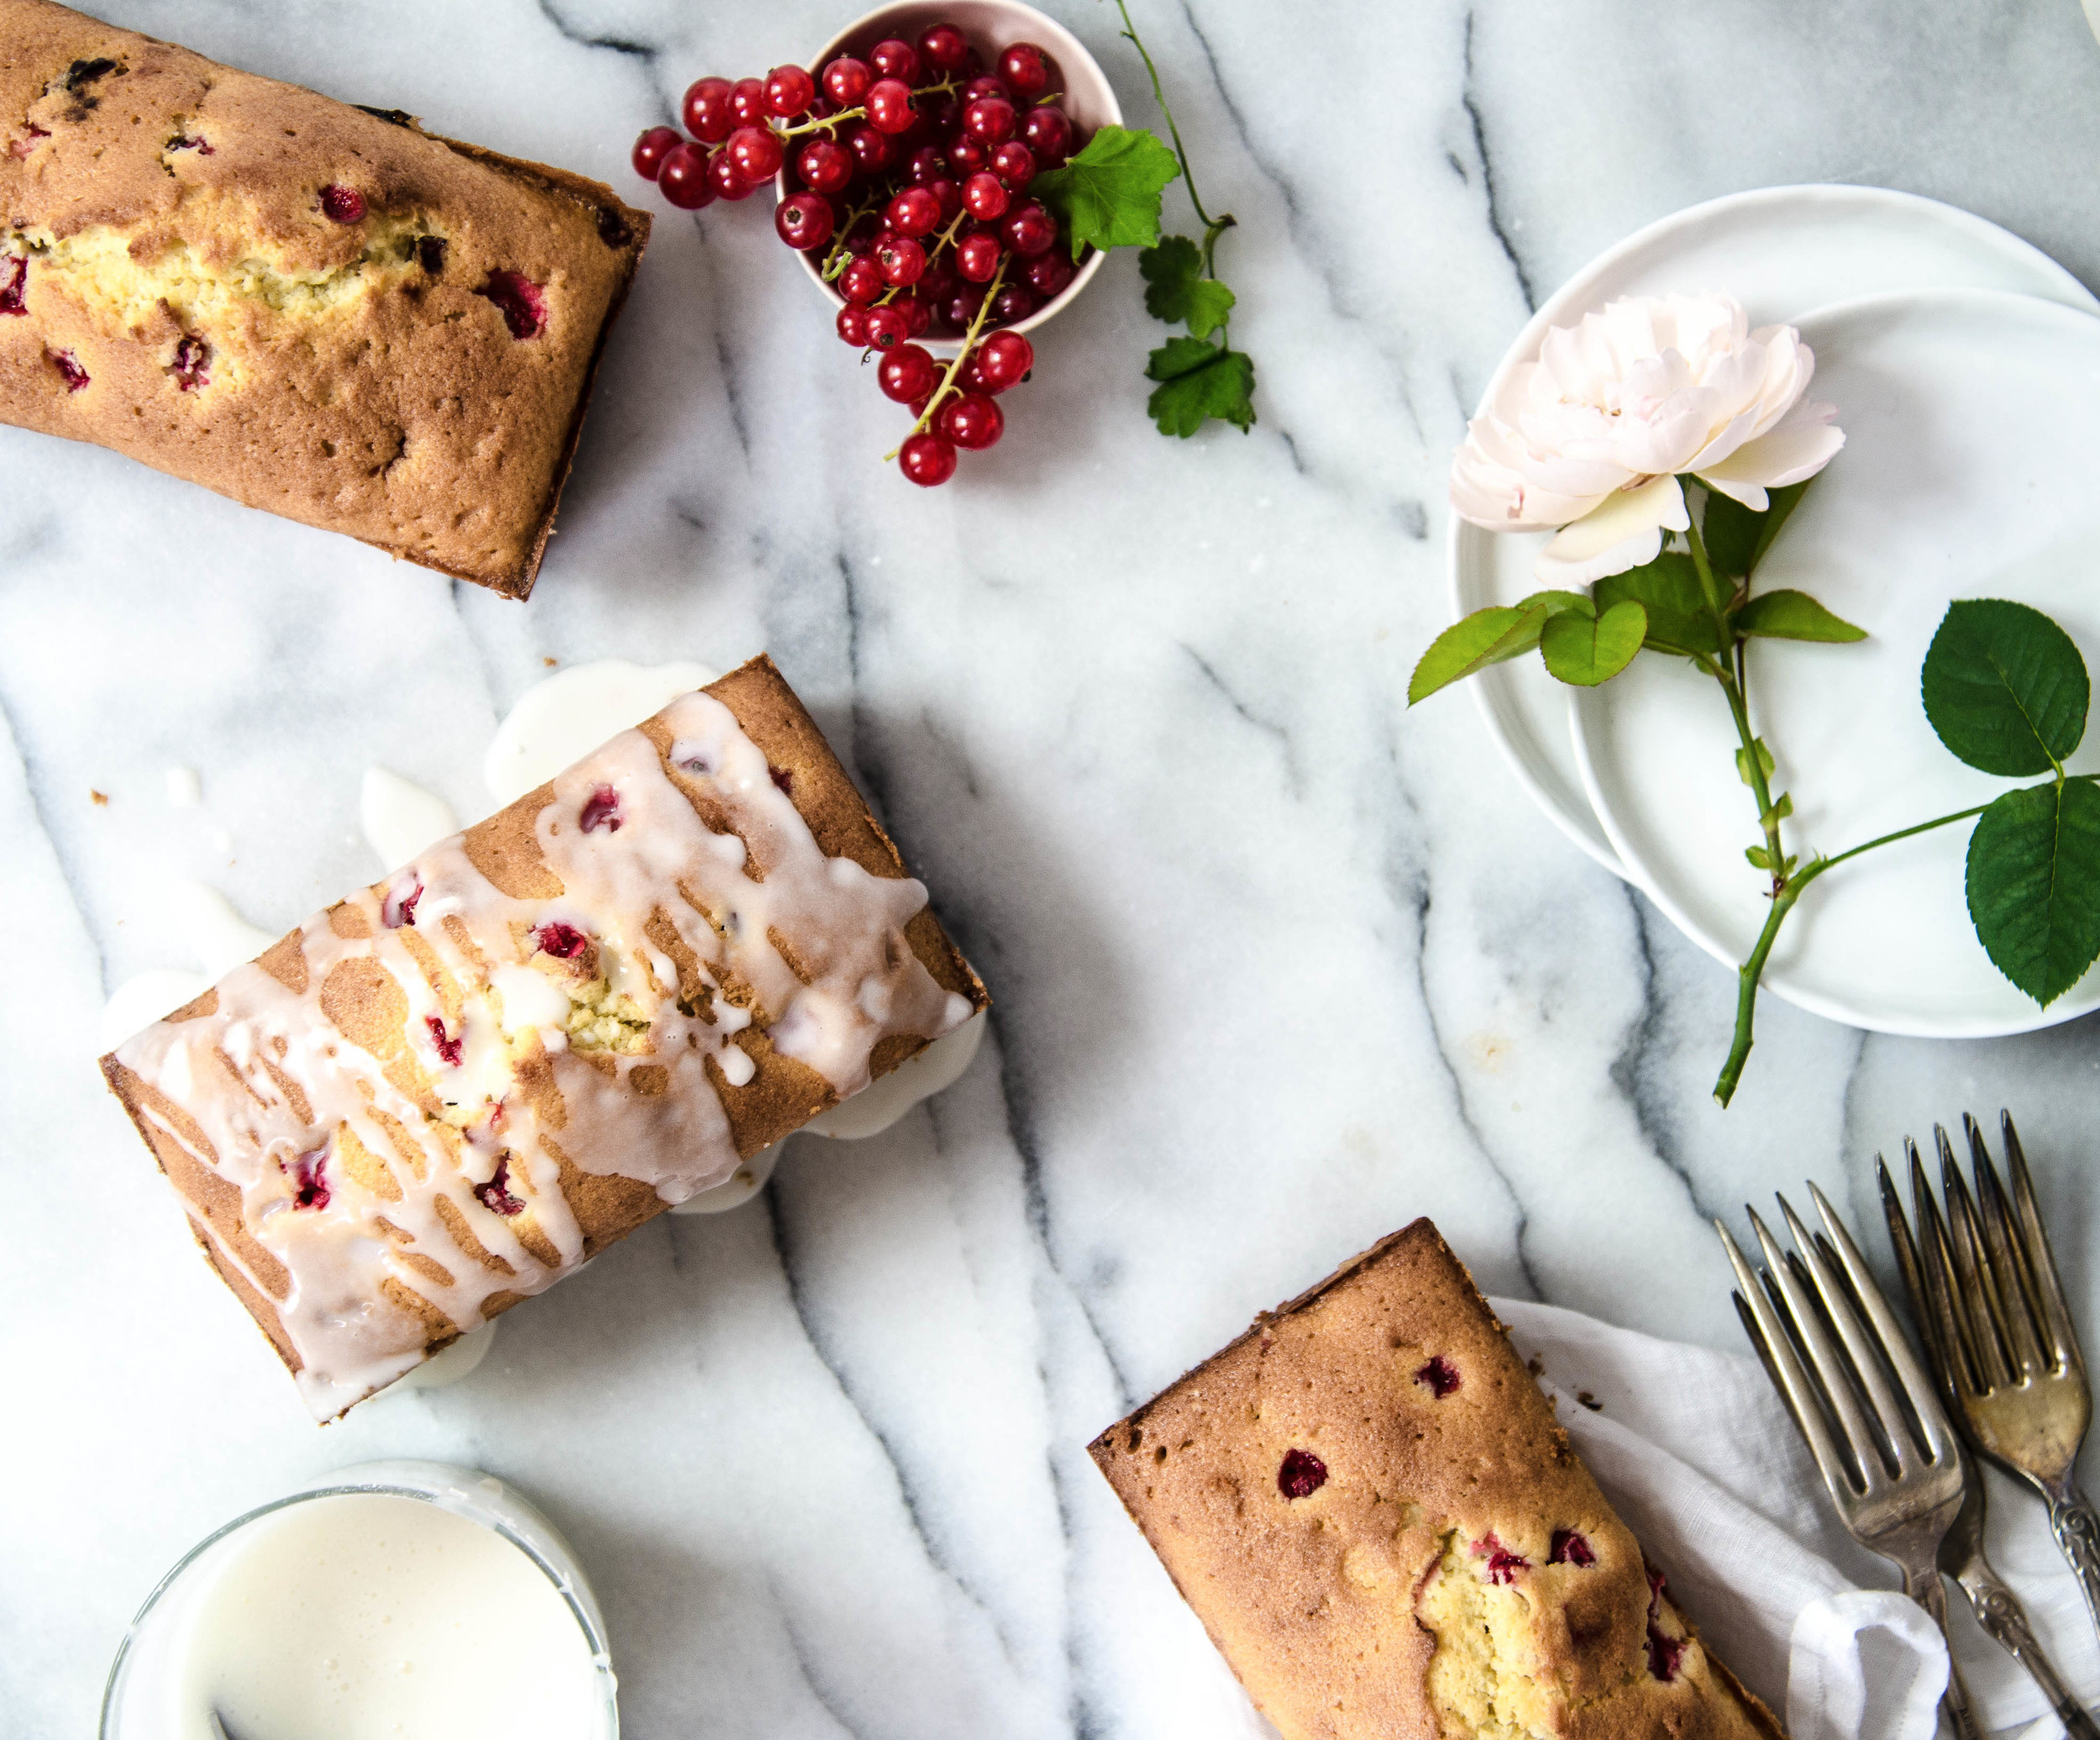 ROSE & IVY Journal Red Currant Pound Cake